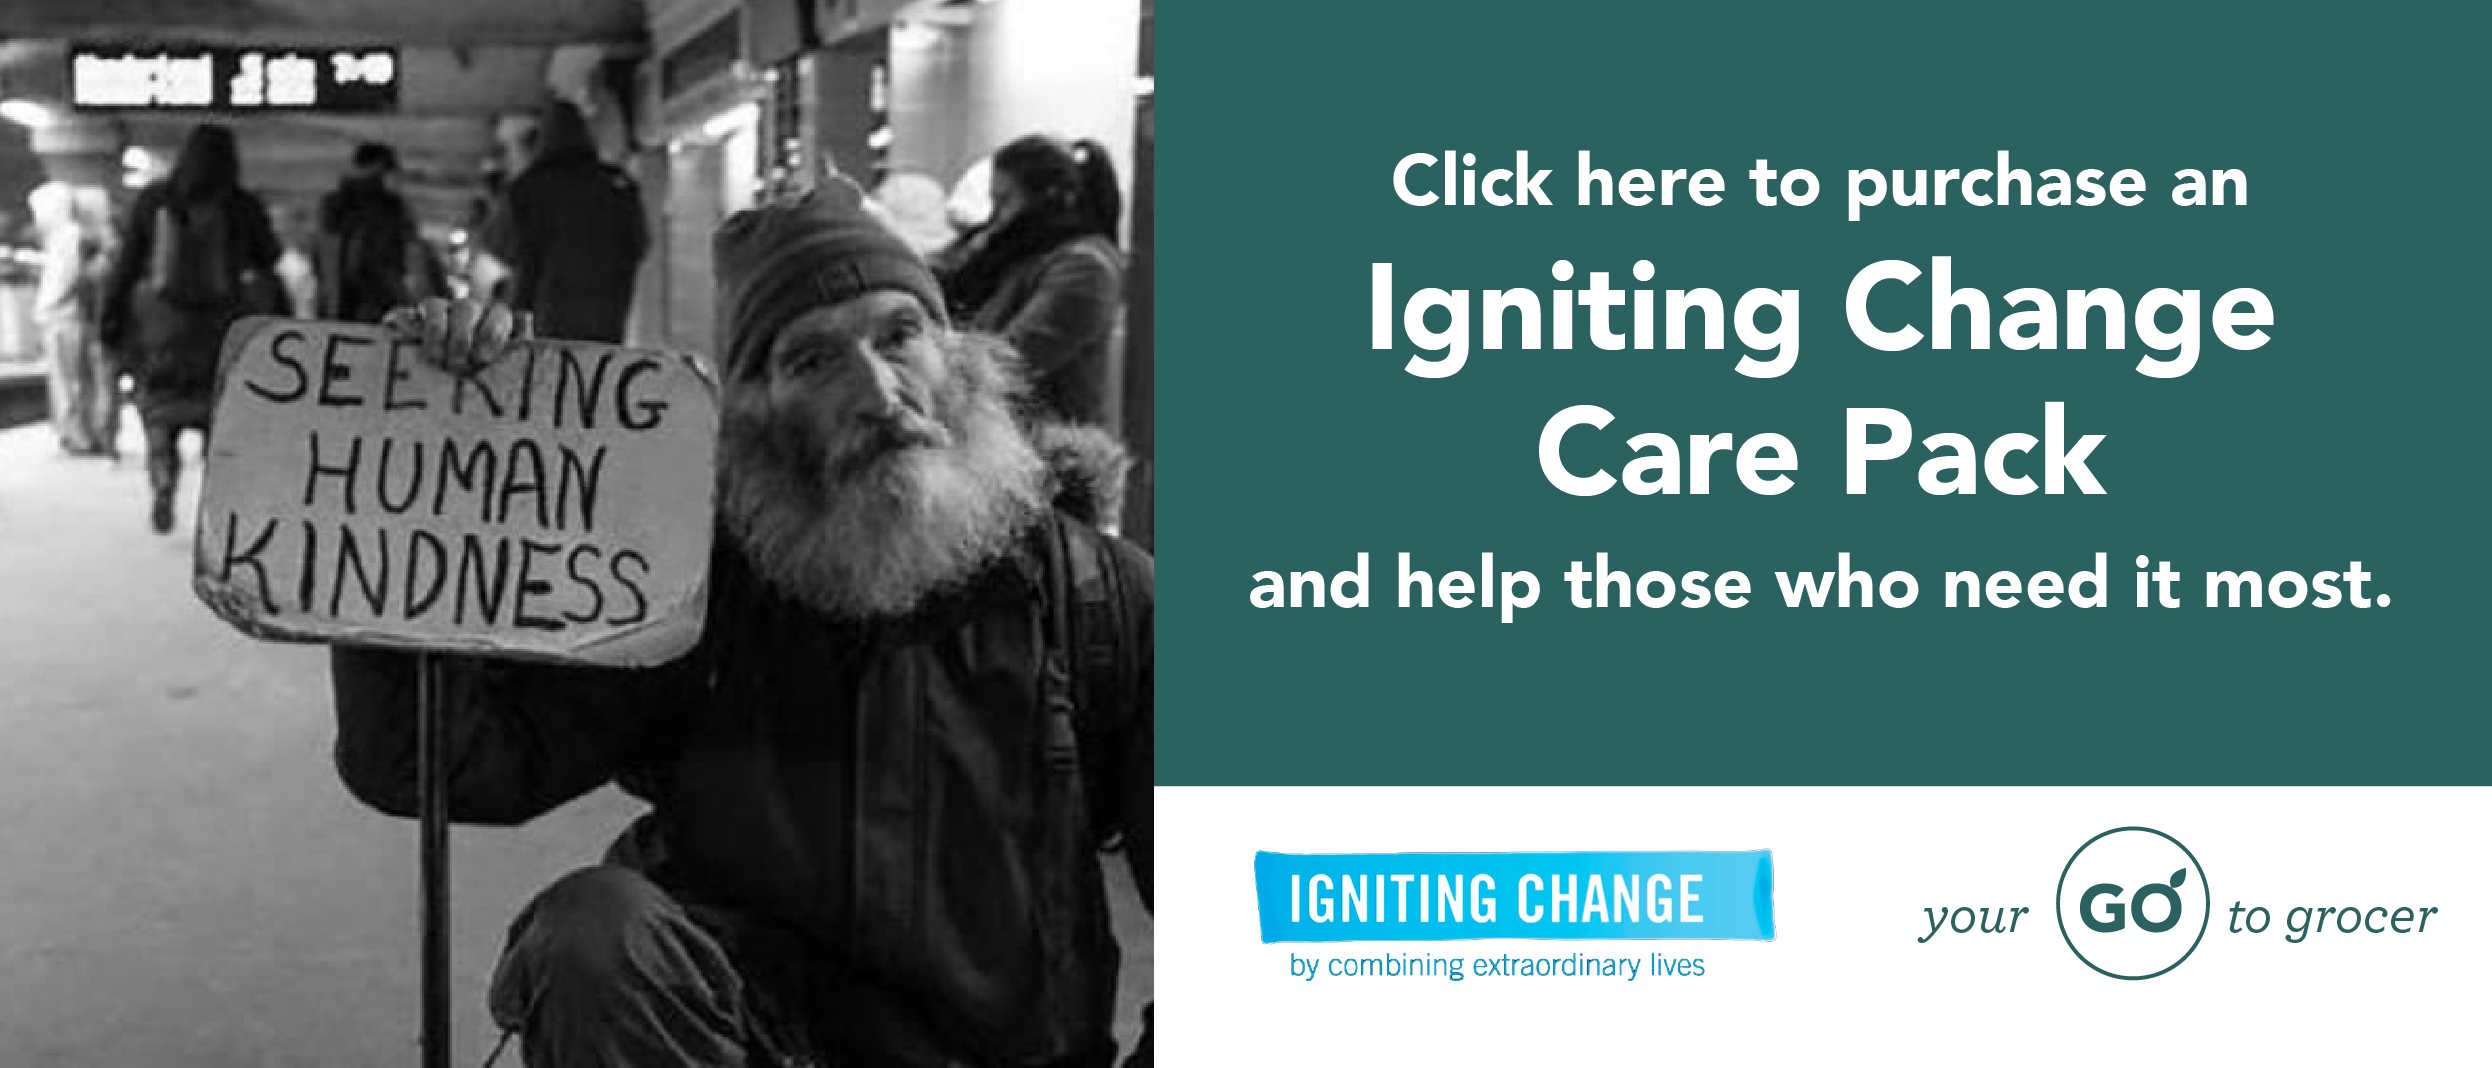 Igniting Change Care Pack